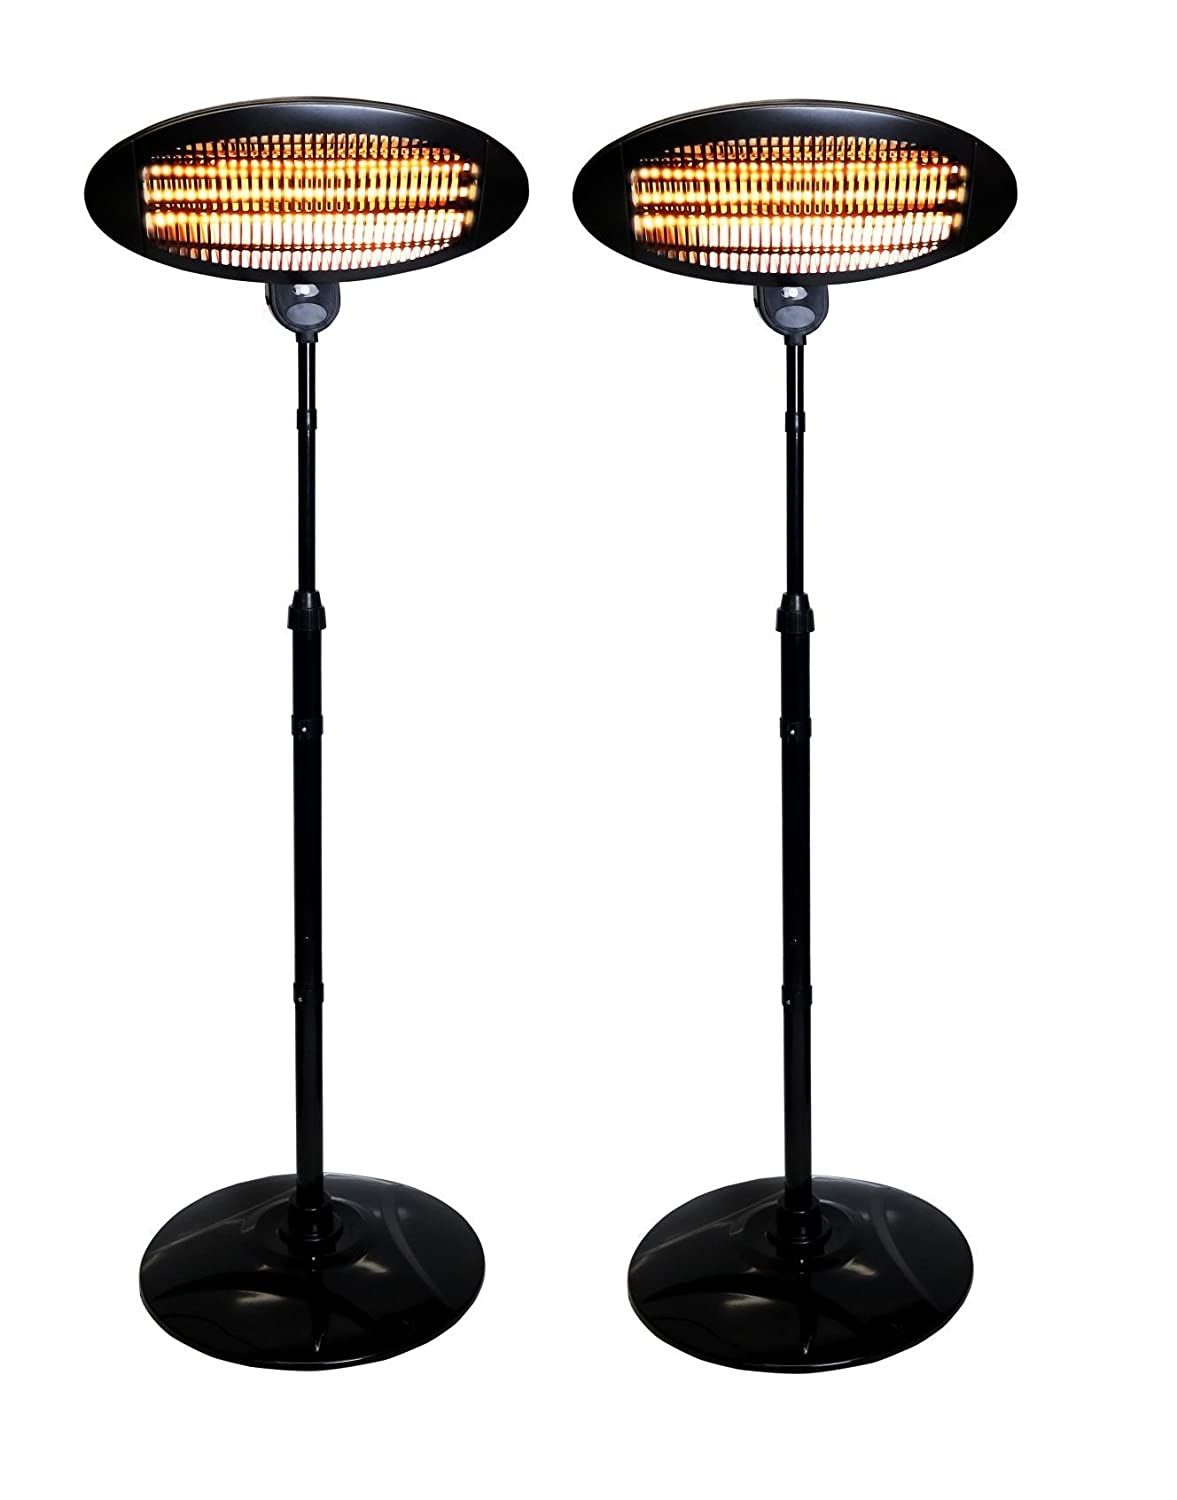 Set Of 2 Heaters 2kW Freestanding Electric Quartz Garden Patio Indoor Outdoor Heaters - 3 Power Settings, Adjustable Height, Adjustable Angle Head Plus Safety Cut Off Switch Hamble Kingavon